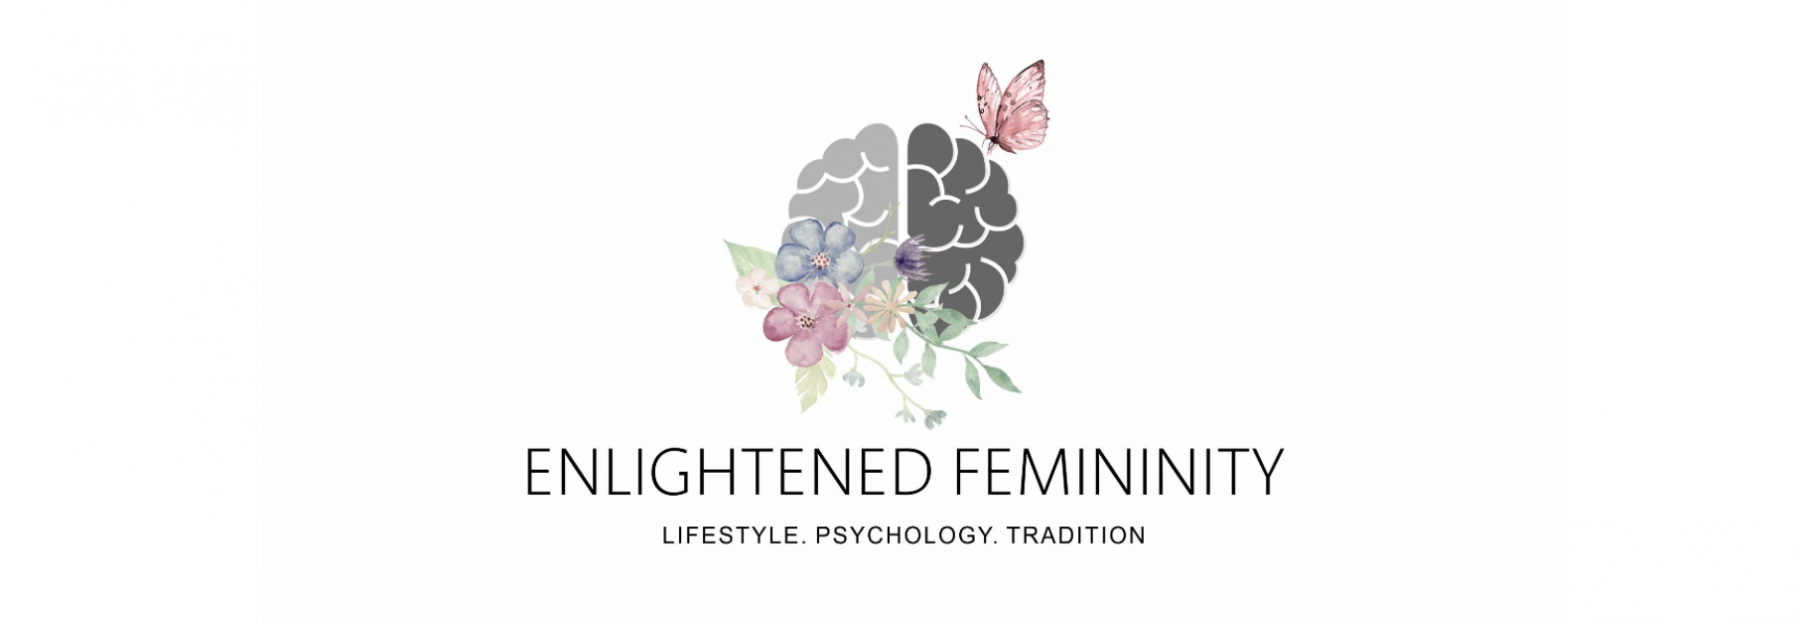 Enlightened Femininity